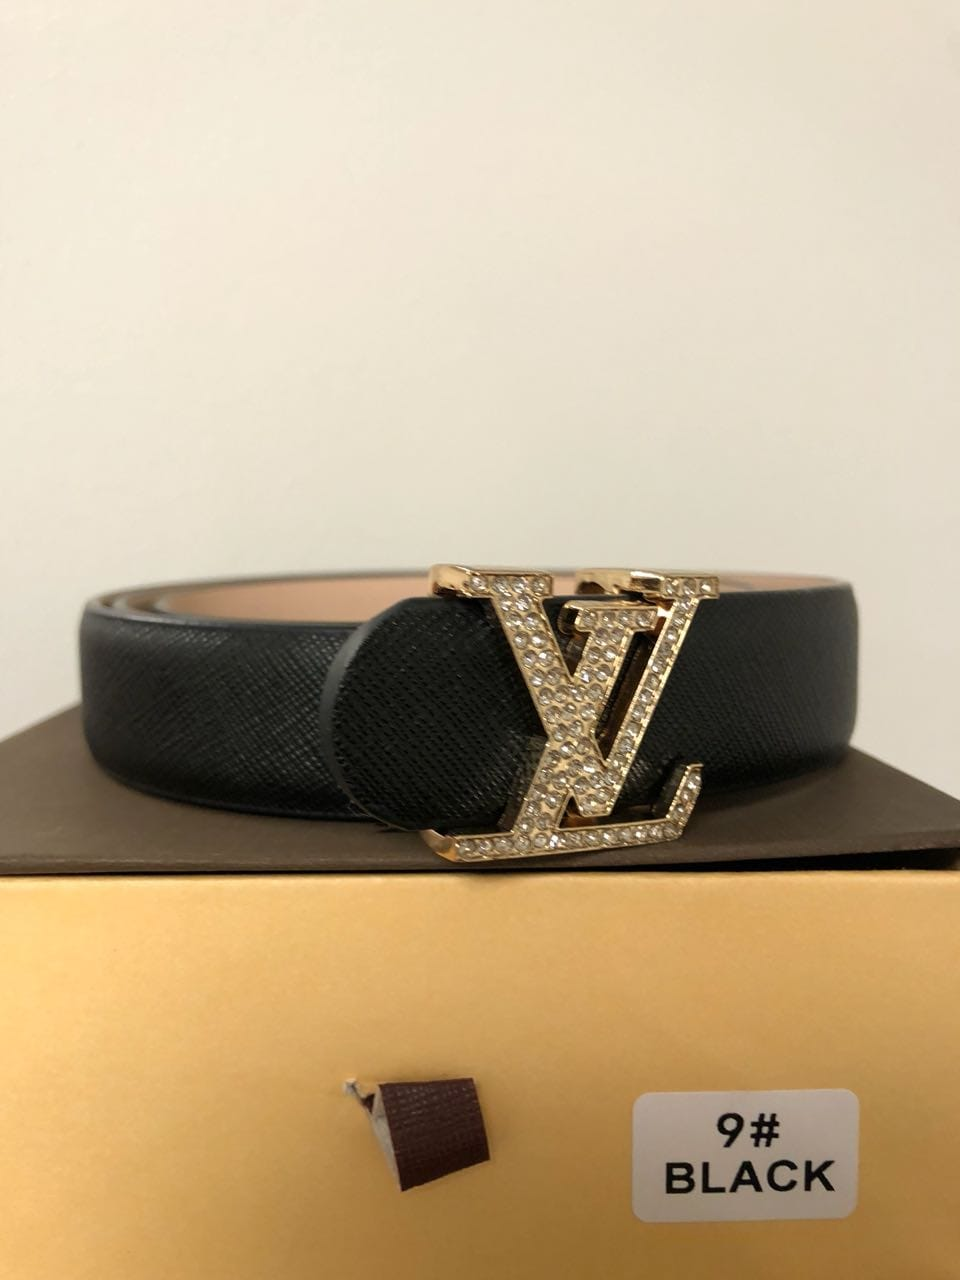 CORREA LOUIS VUITTON NEGRA CON BRILLANTES